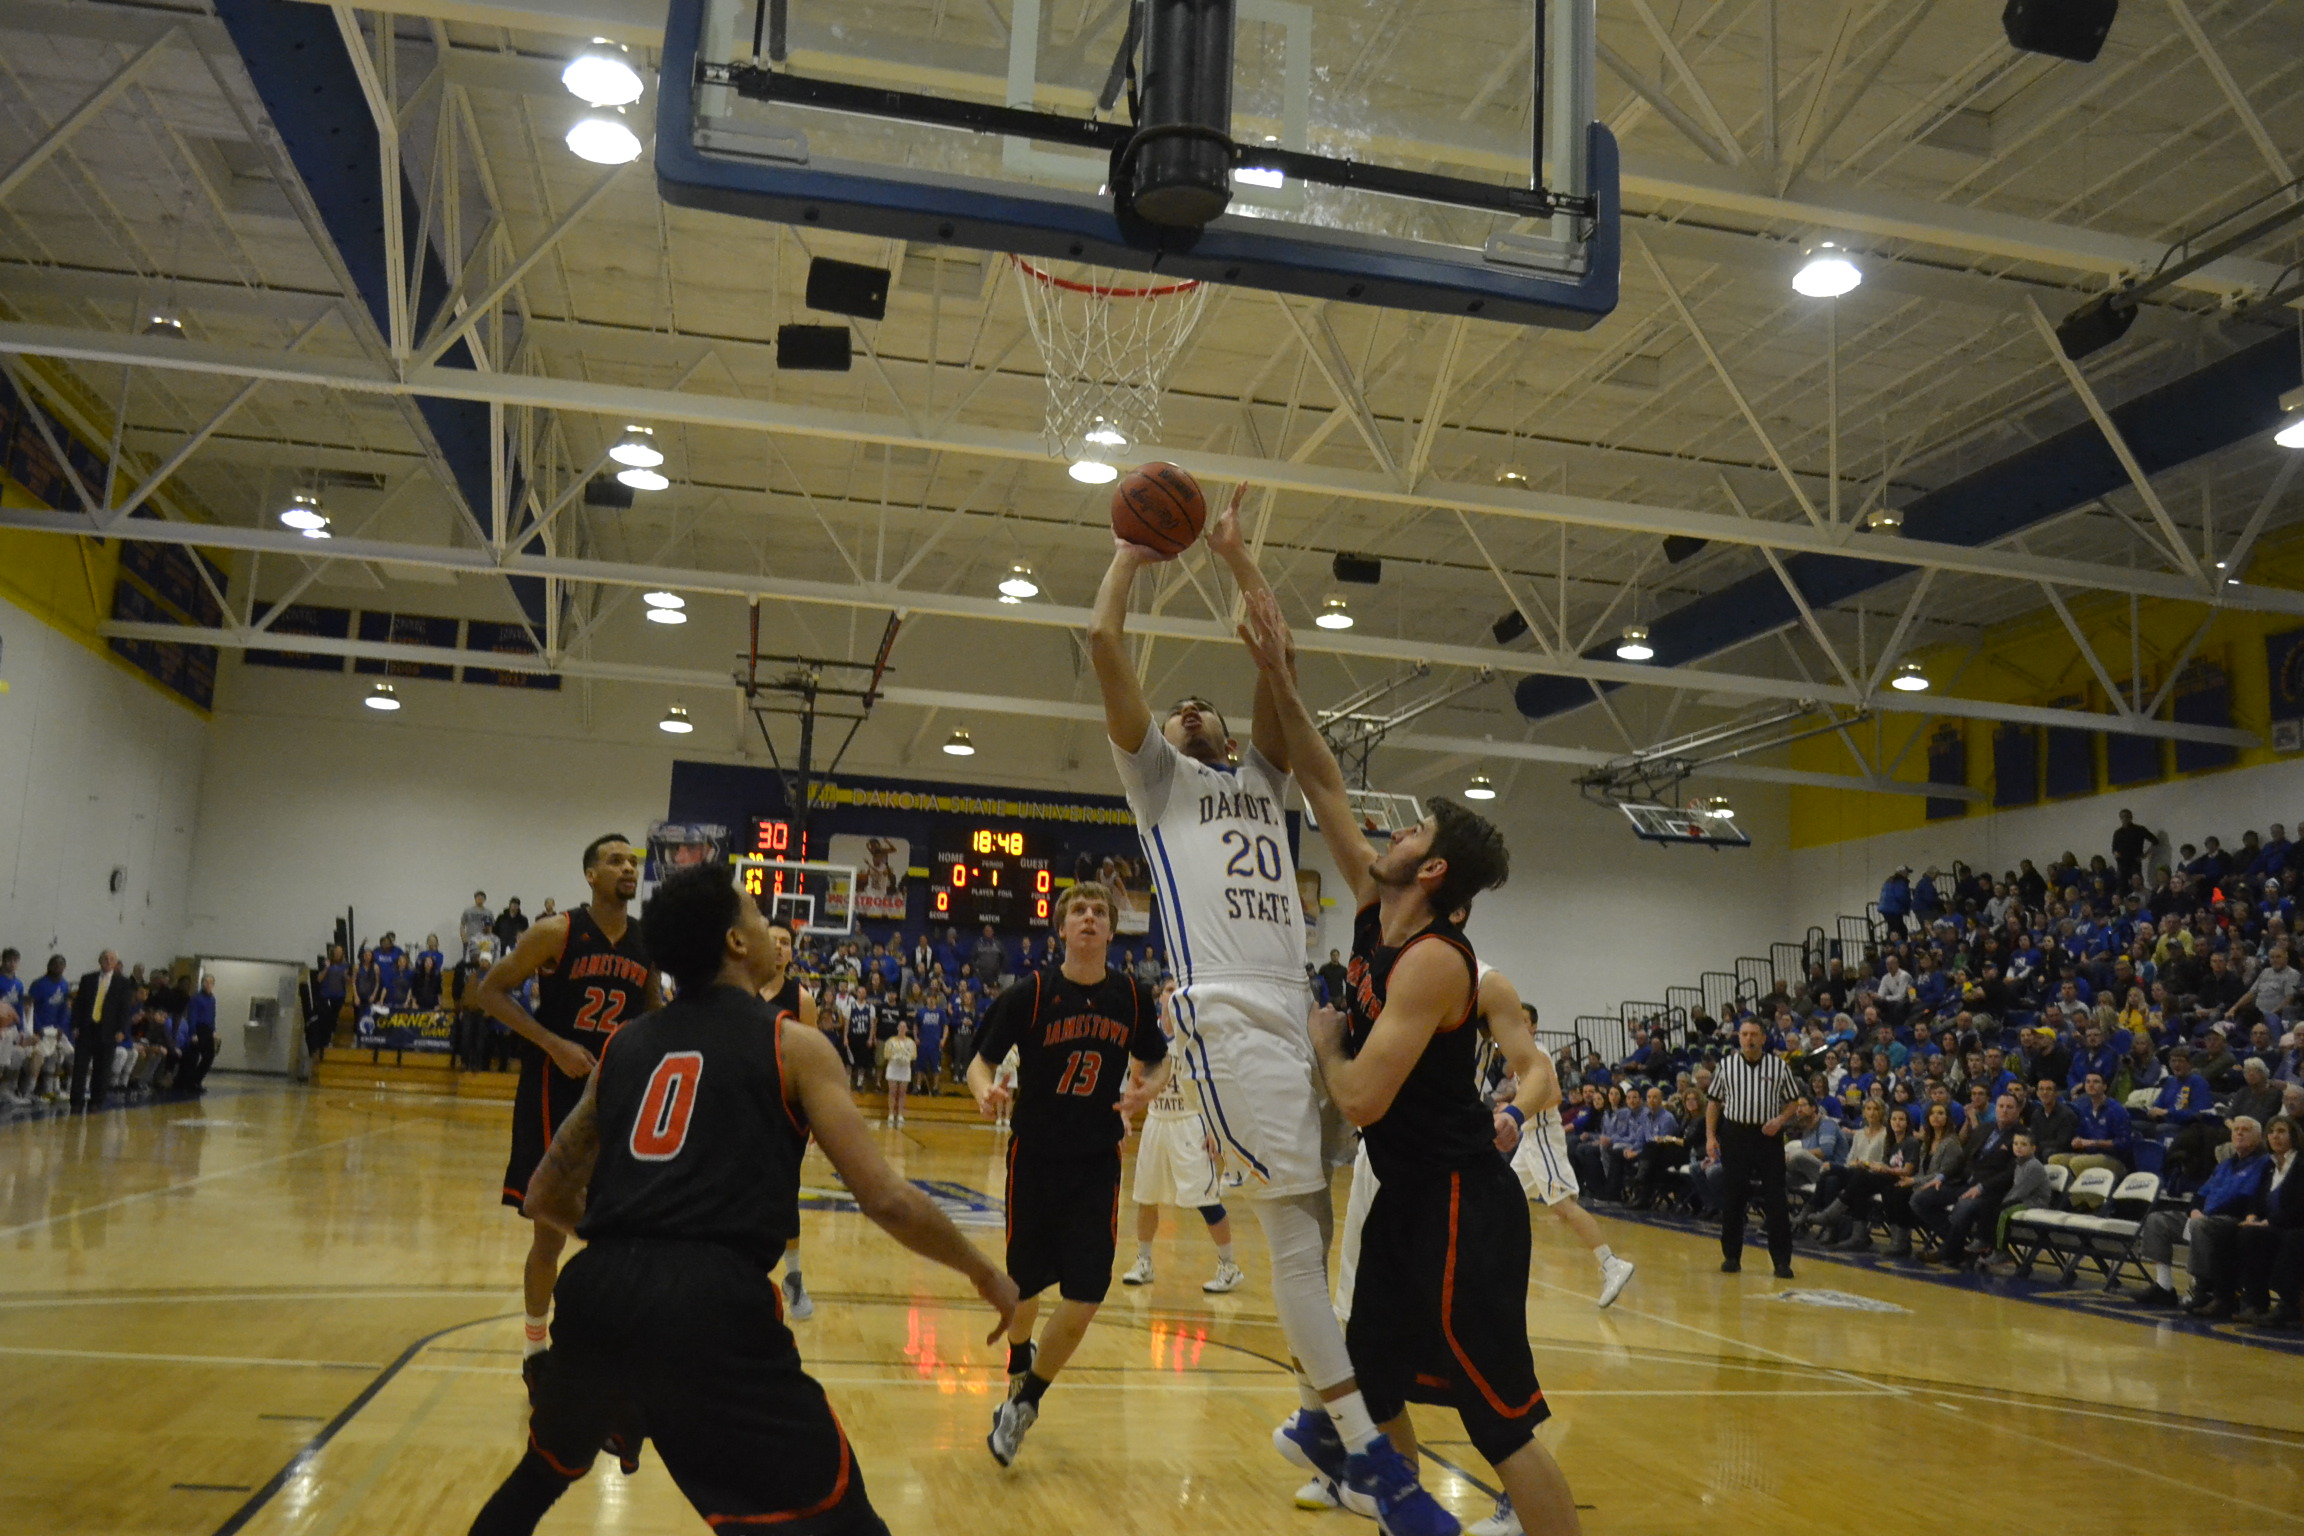 DSU Trojans vs. DWU Tigers Basketball Recap